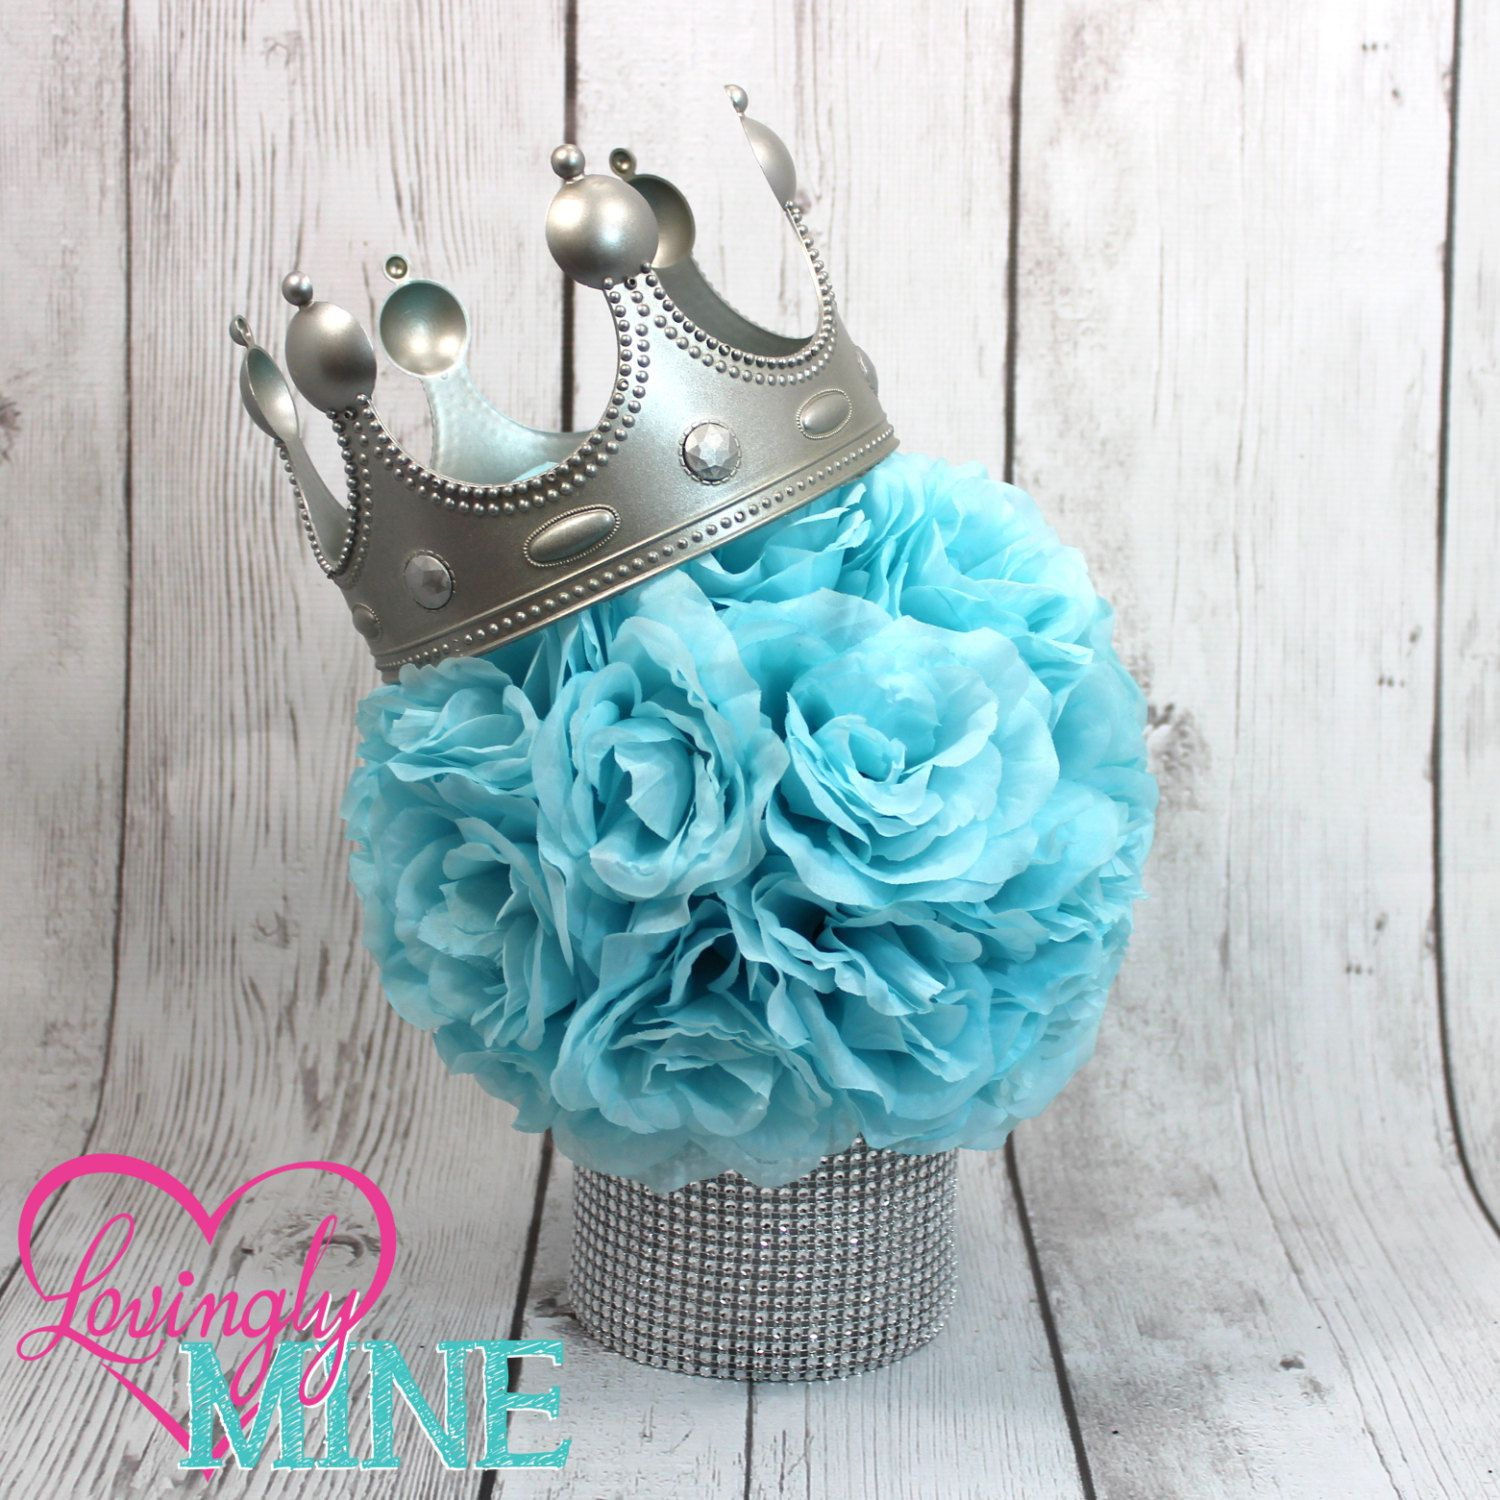 Little prince inspired centerpiece perfect for any event